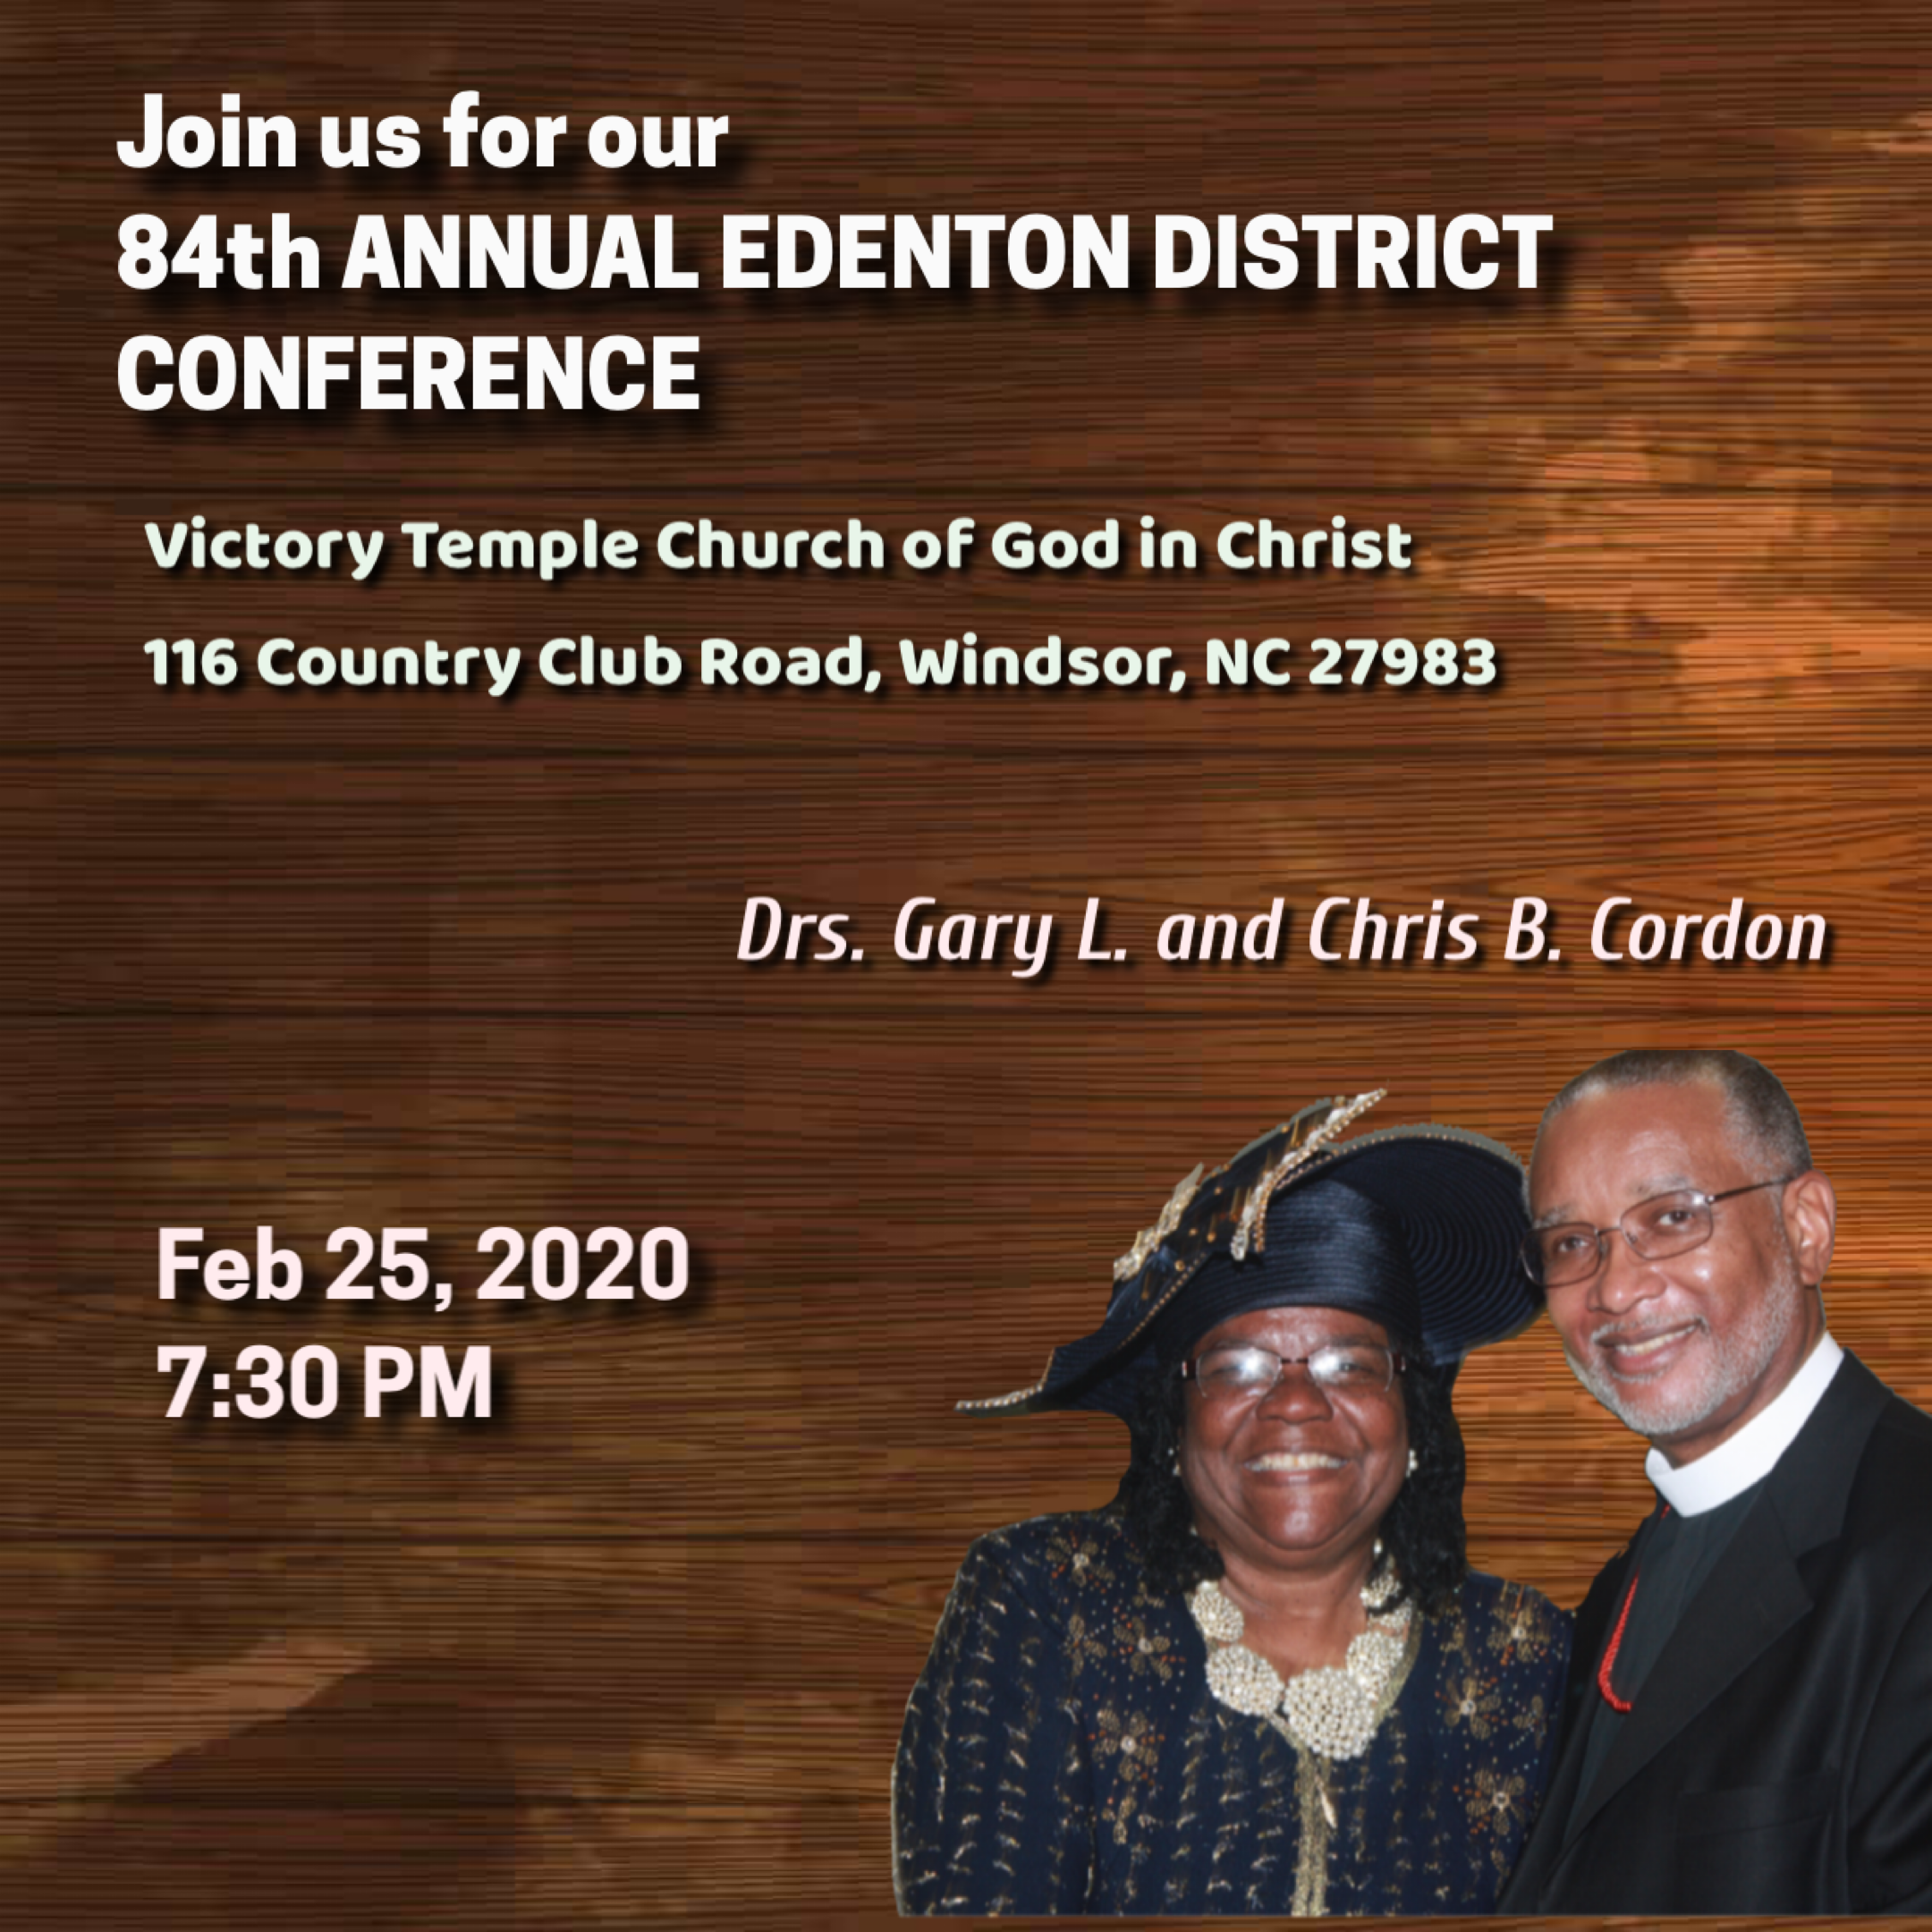 84th Annual Edenton District Conference, Tuesday night - Dr Gary L Cordon Sr